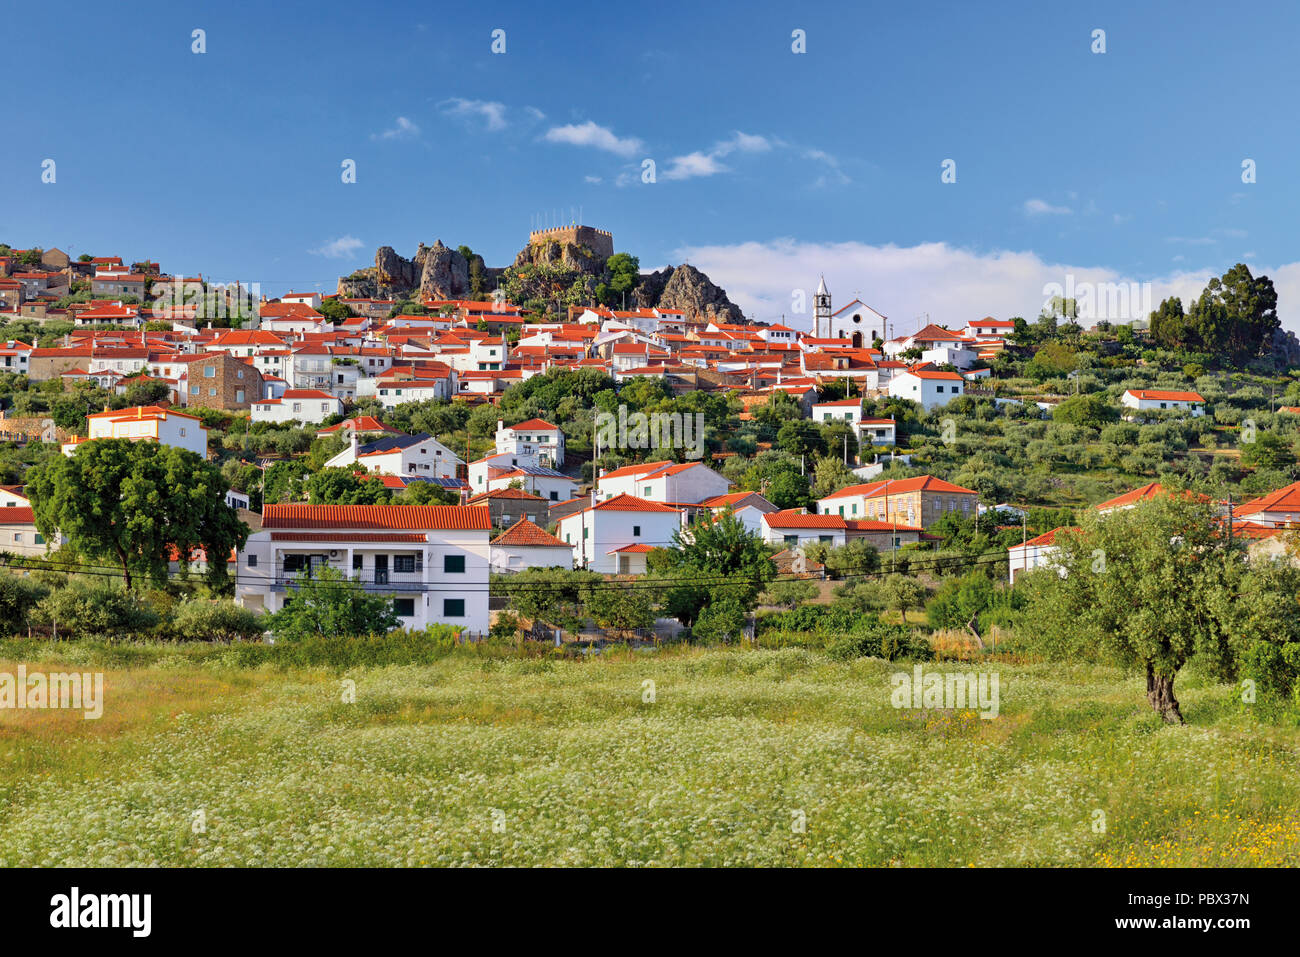 View to a charming small village with a castle ruin on the top - Stock Image